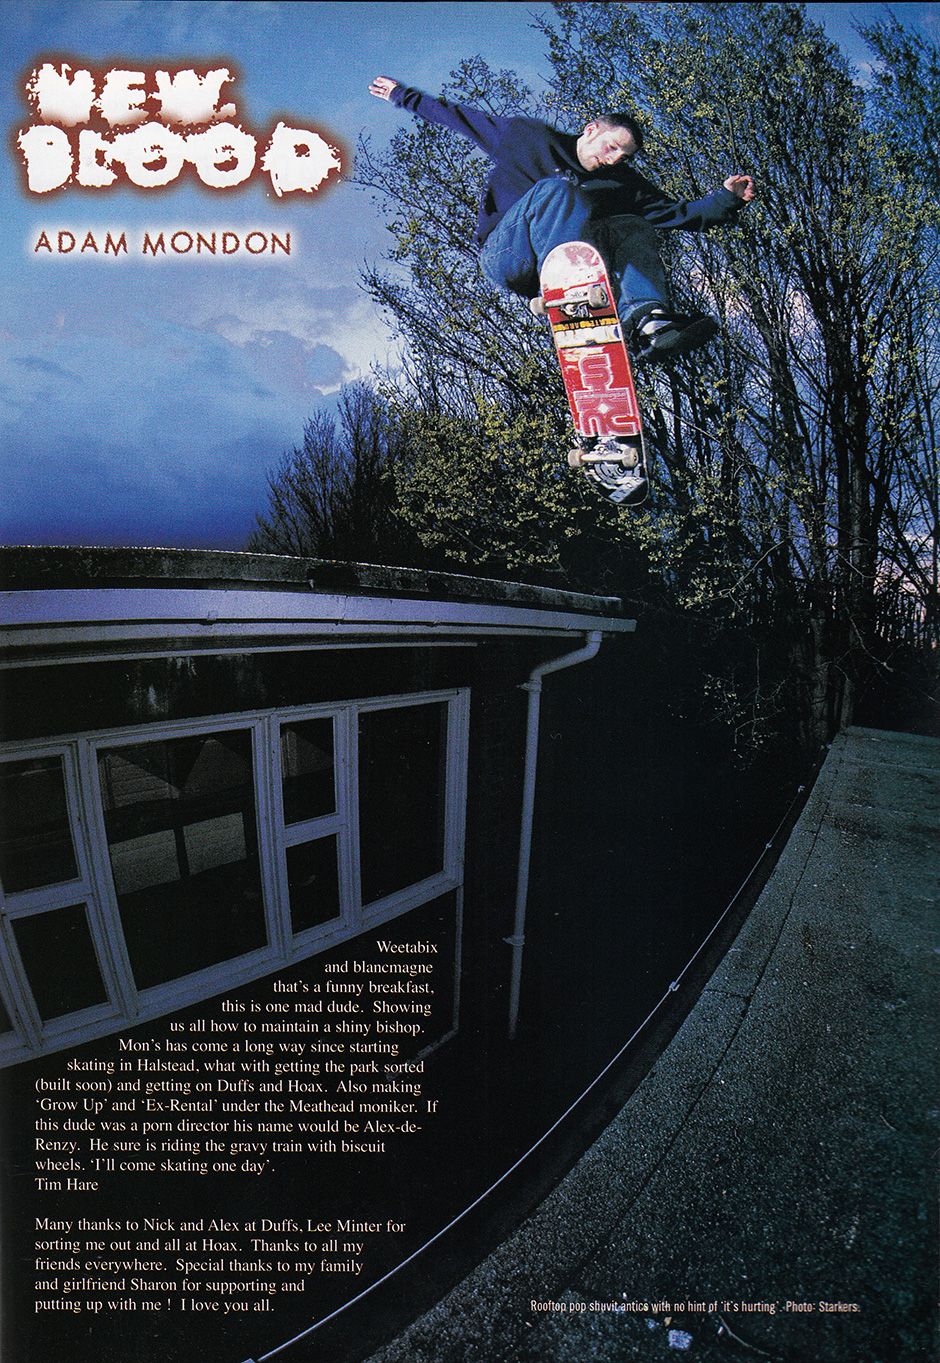 Adam on the other side of the lens. Roof gap pop shuvit back in the hoax days. Photo: Andrew Stark